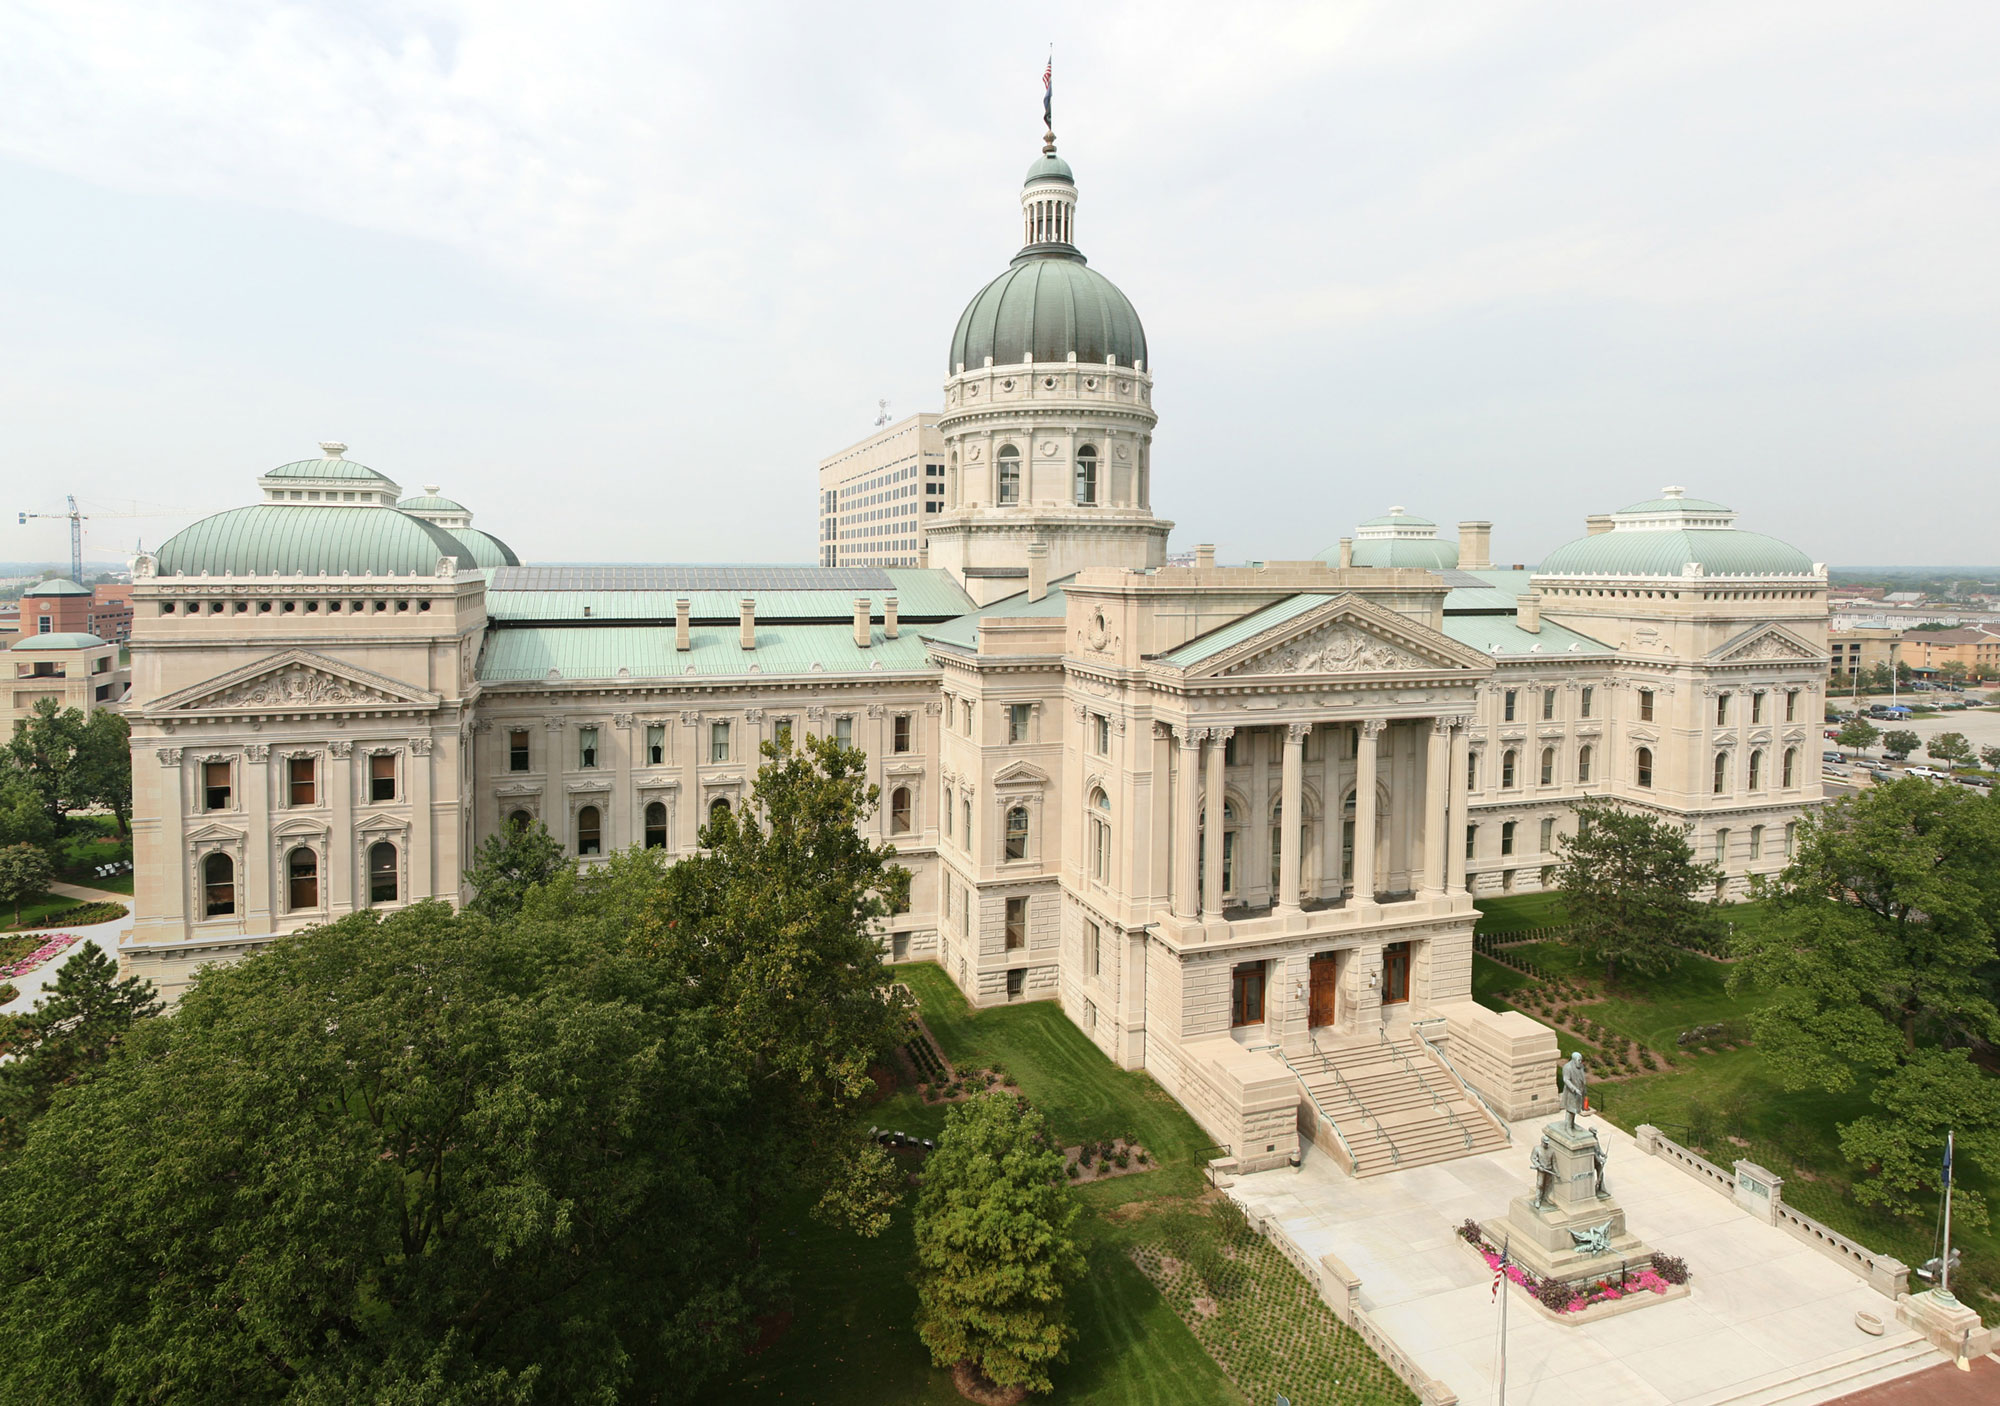 Aerial view of Indiana state capitol